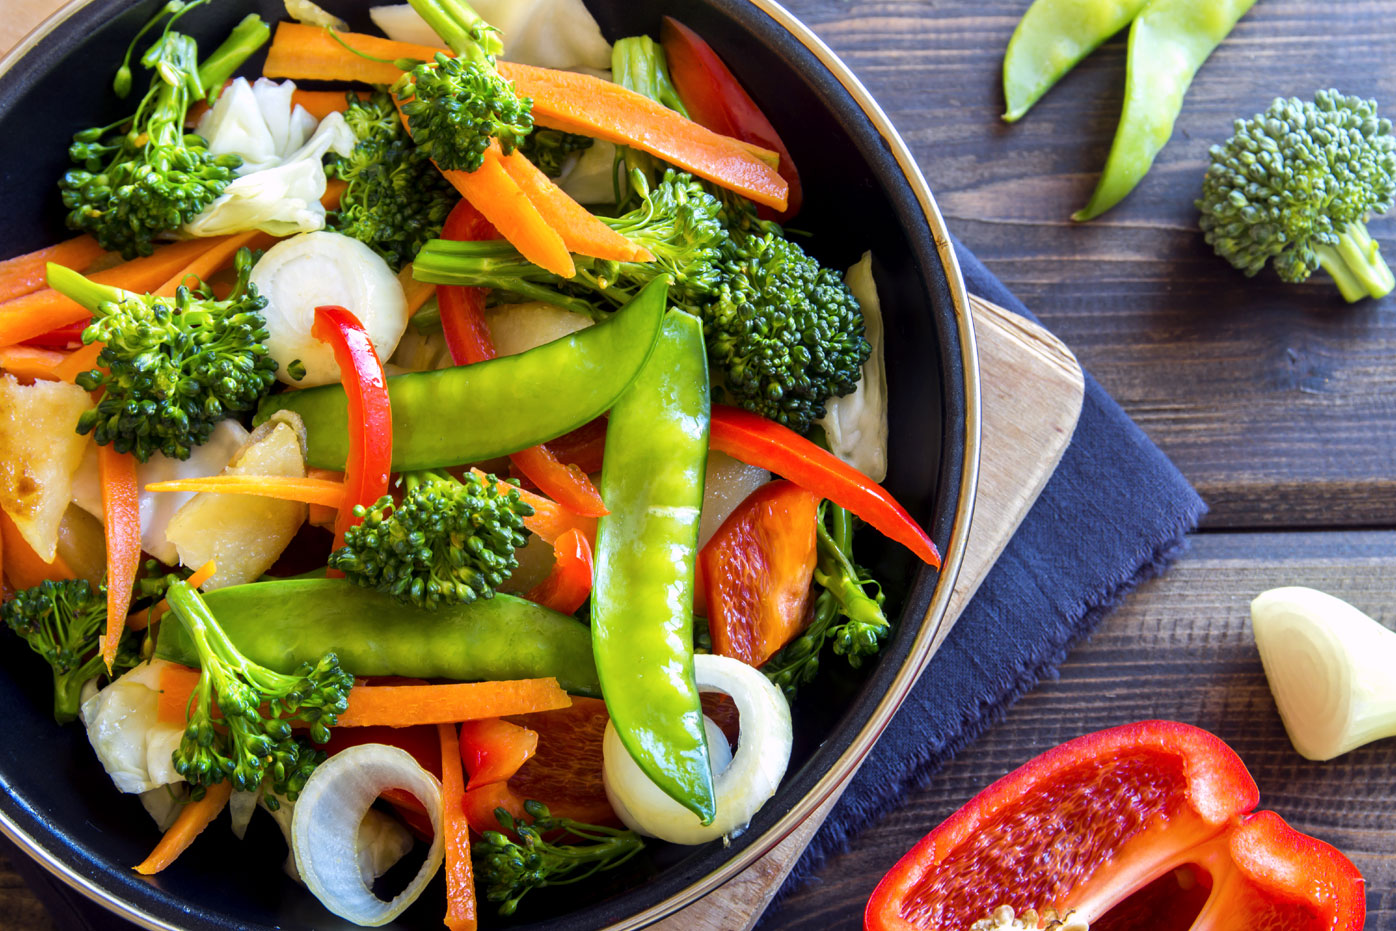 10 myths about vegetarians and vegans